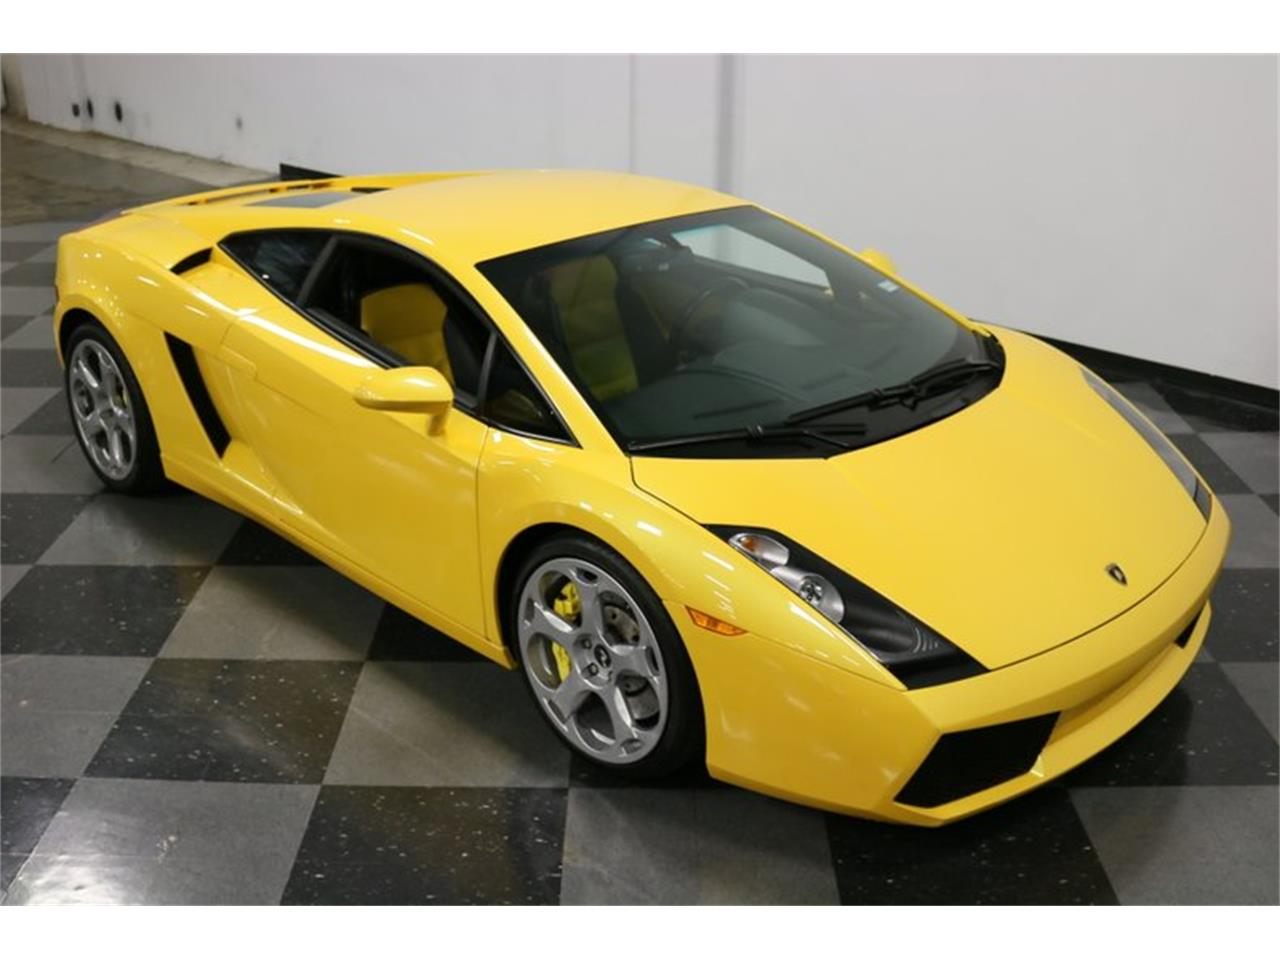 Large Picture of '04 Gallardo located in Ft Worth Texas Offered by Streetside Classics - Dallas / Fort Worth - PWGV